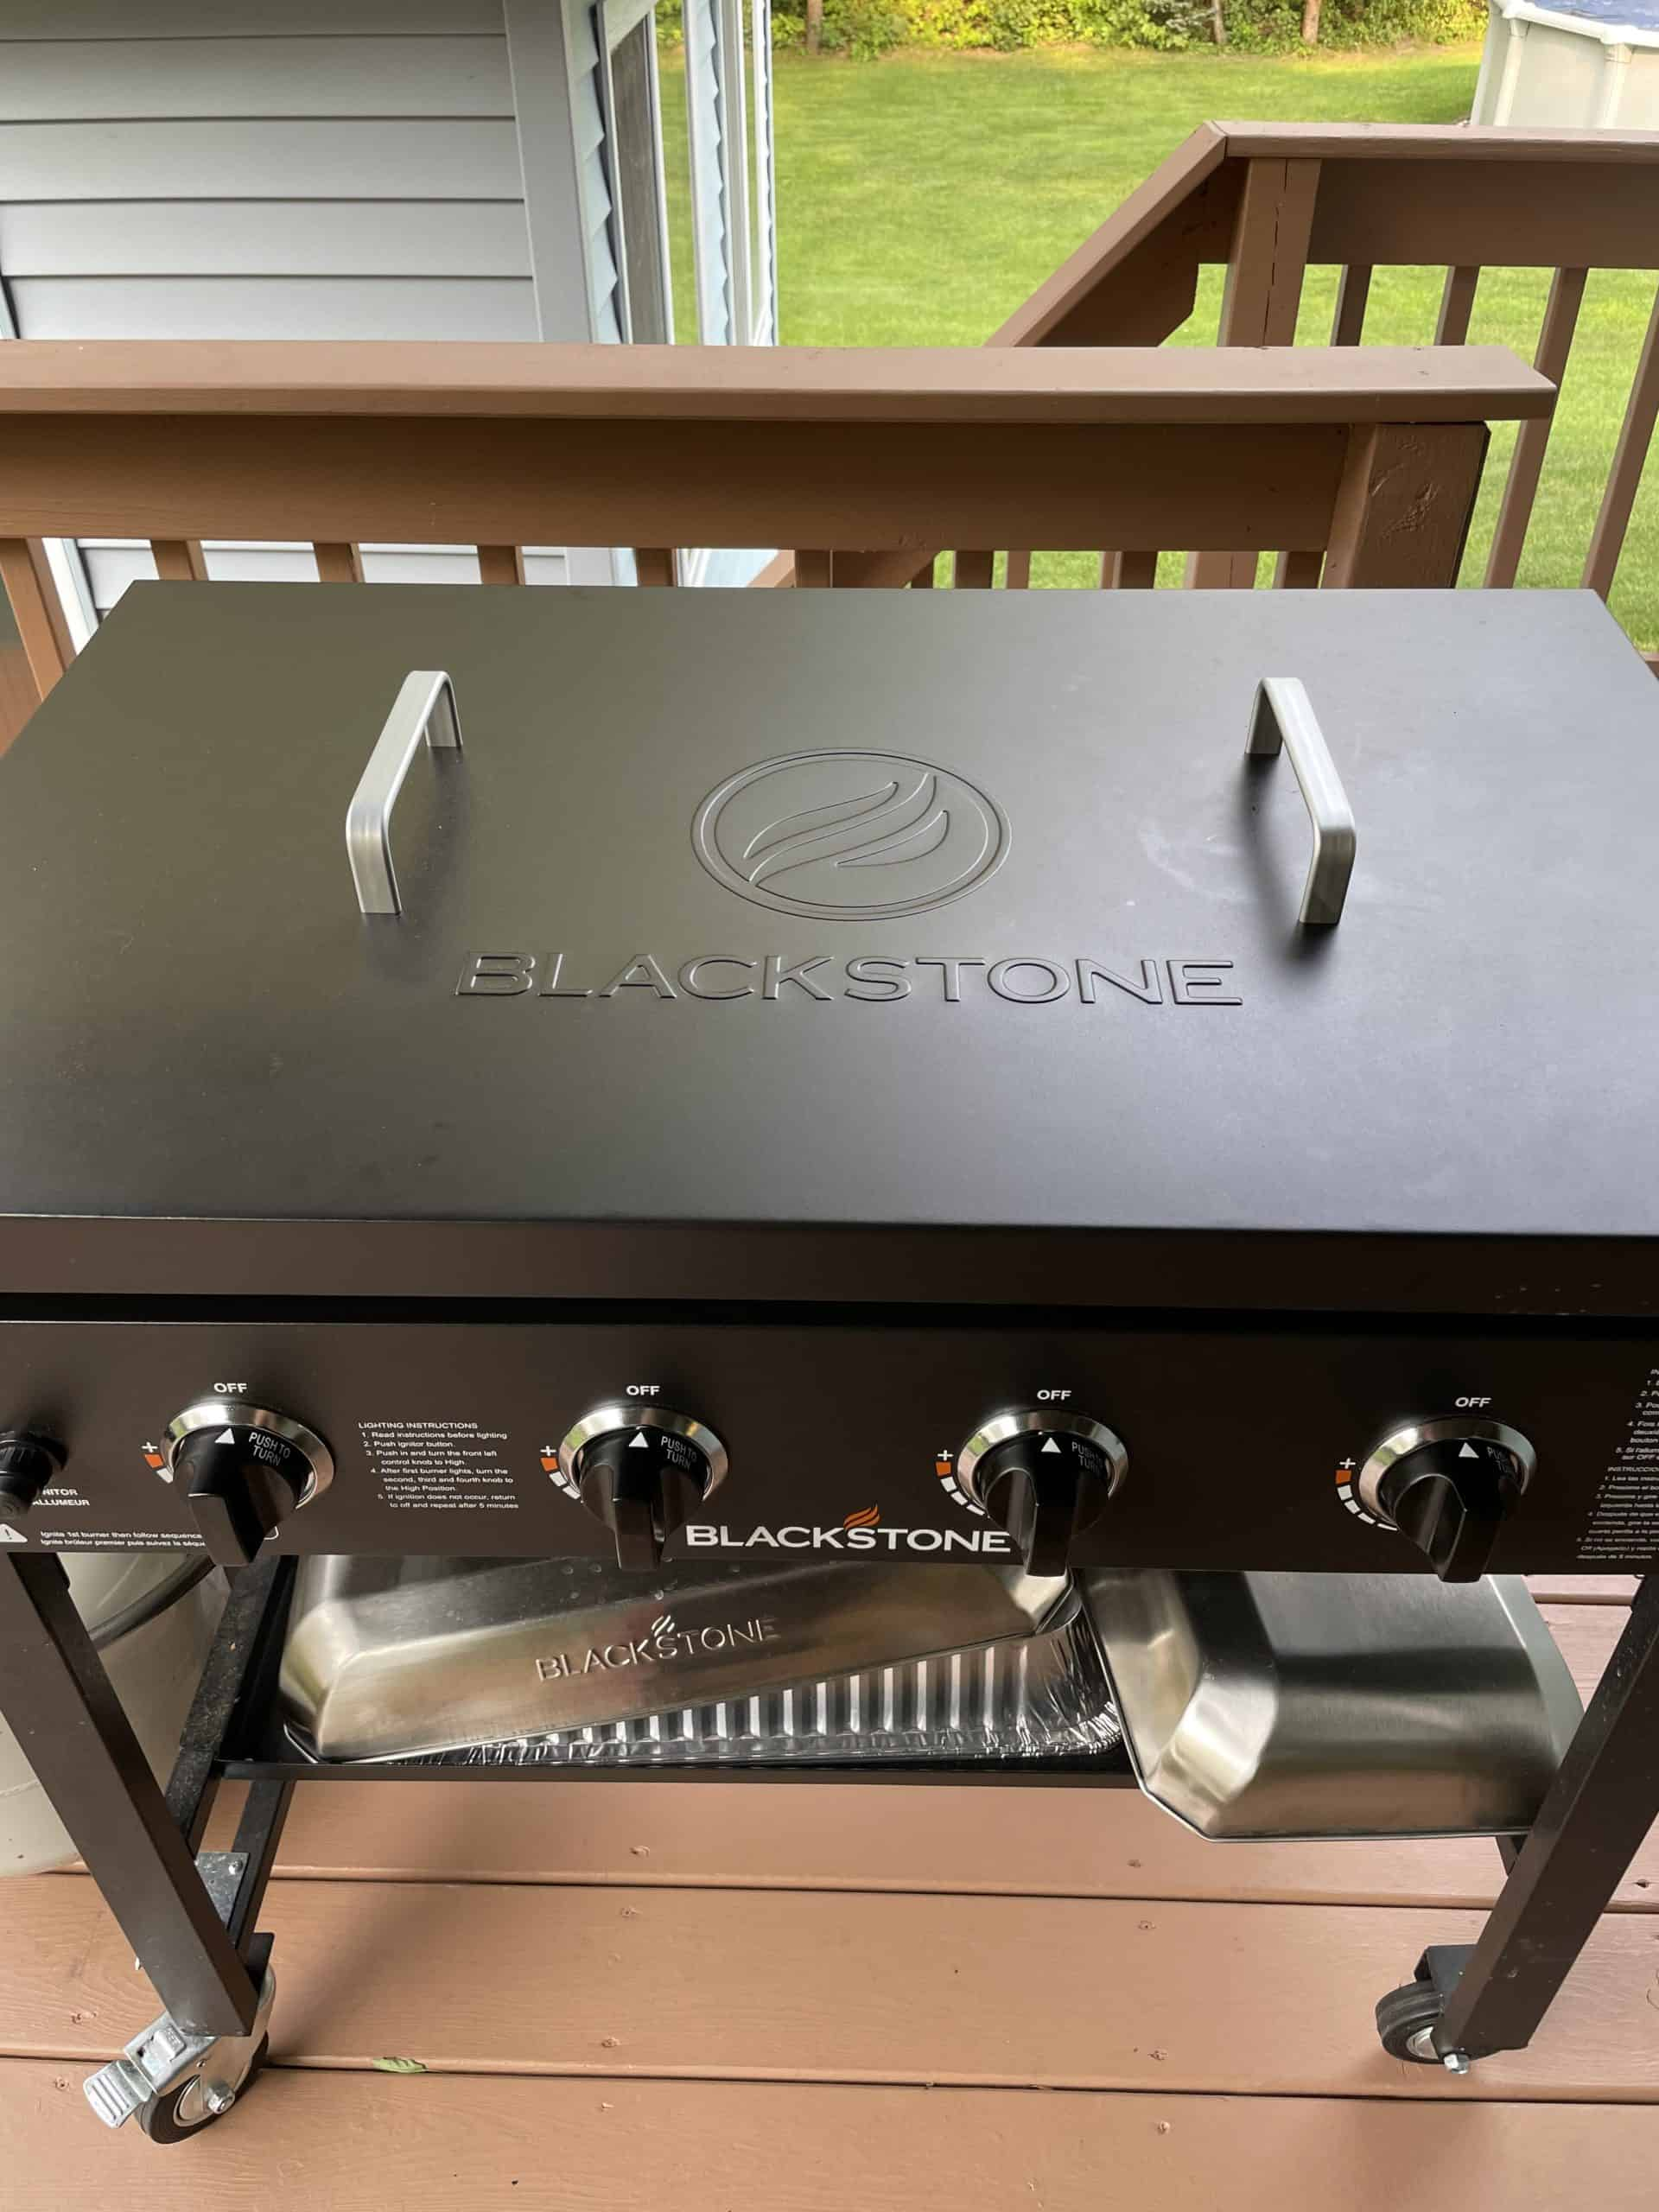 Hard Cover for a Blackstone Griddle.